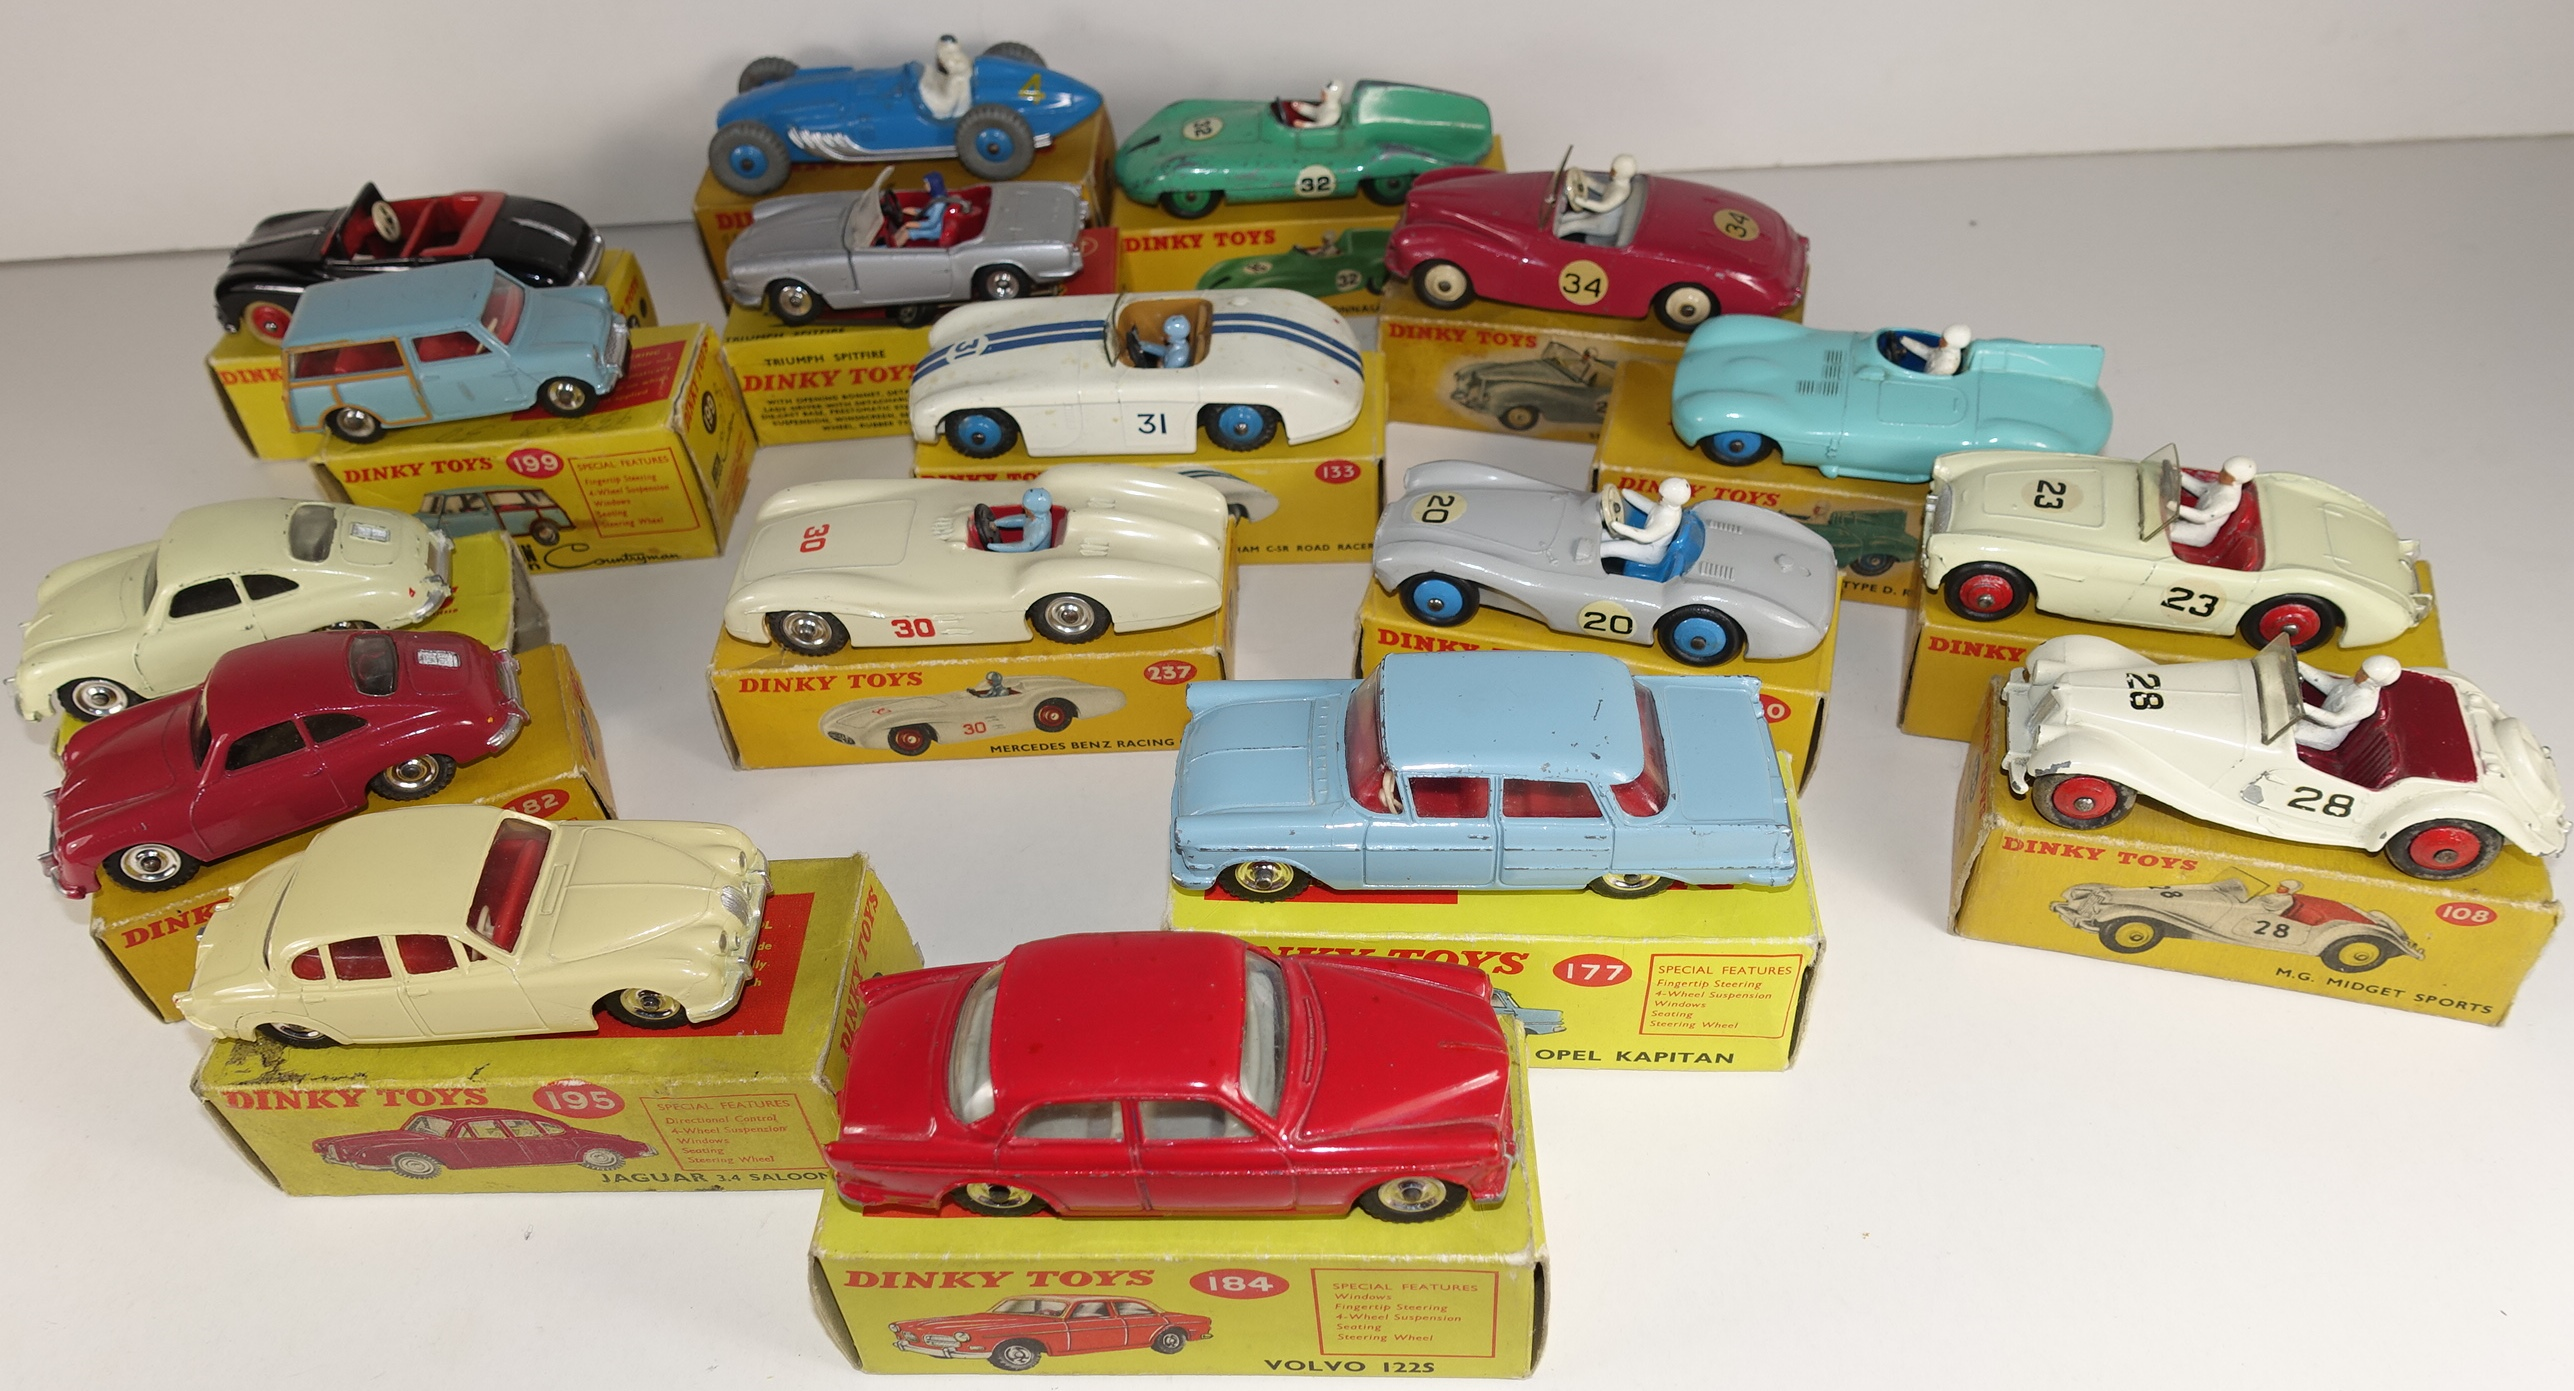 3 Dinky Toys GB boxed